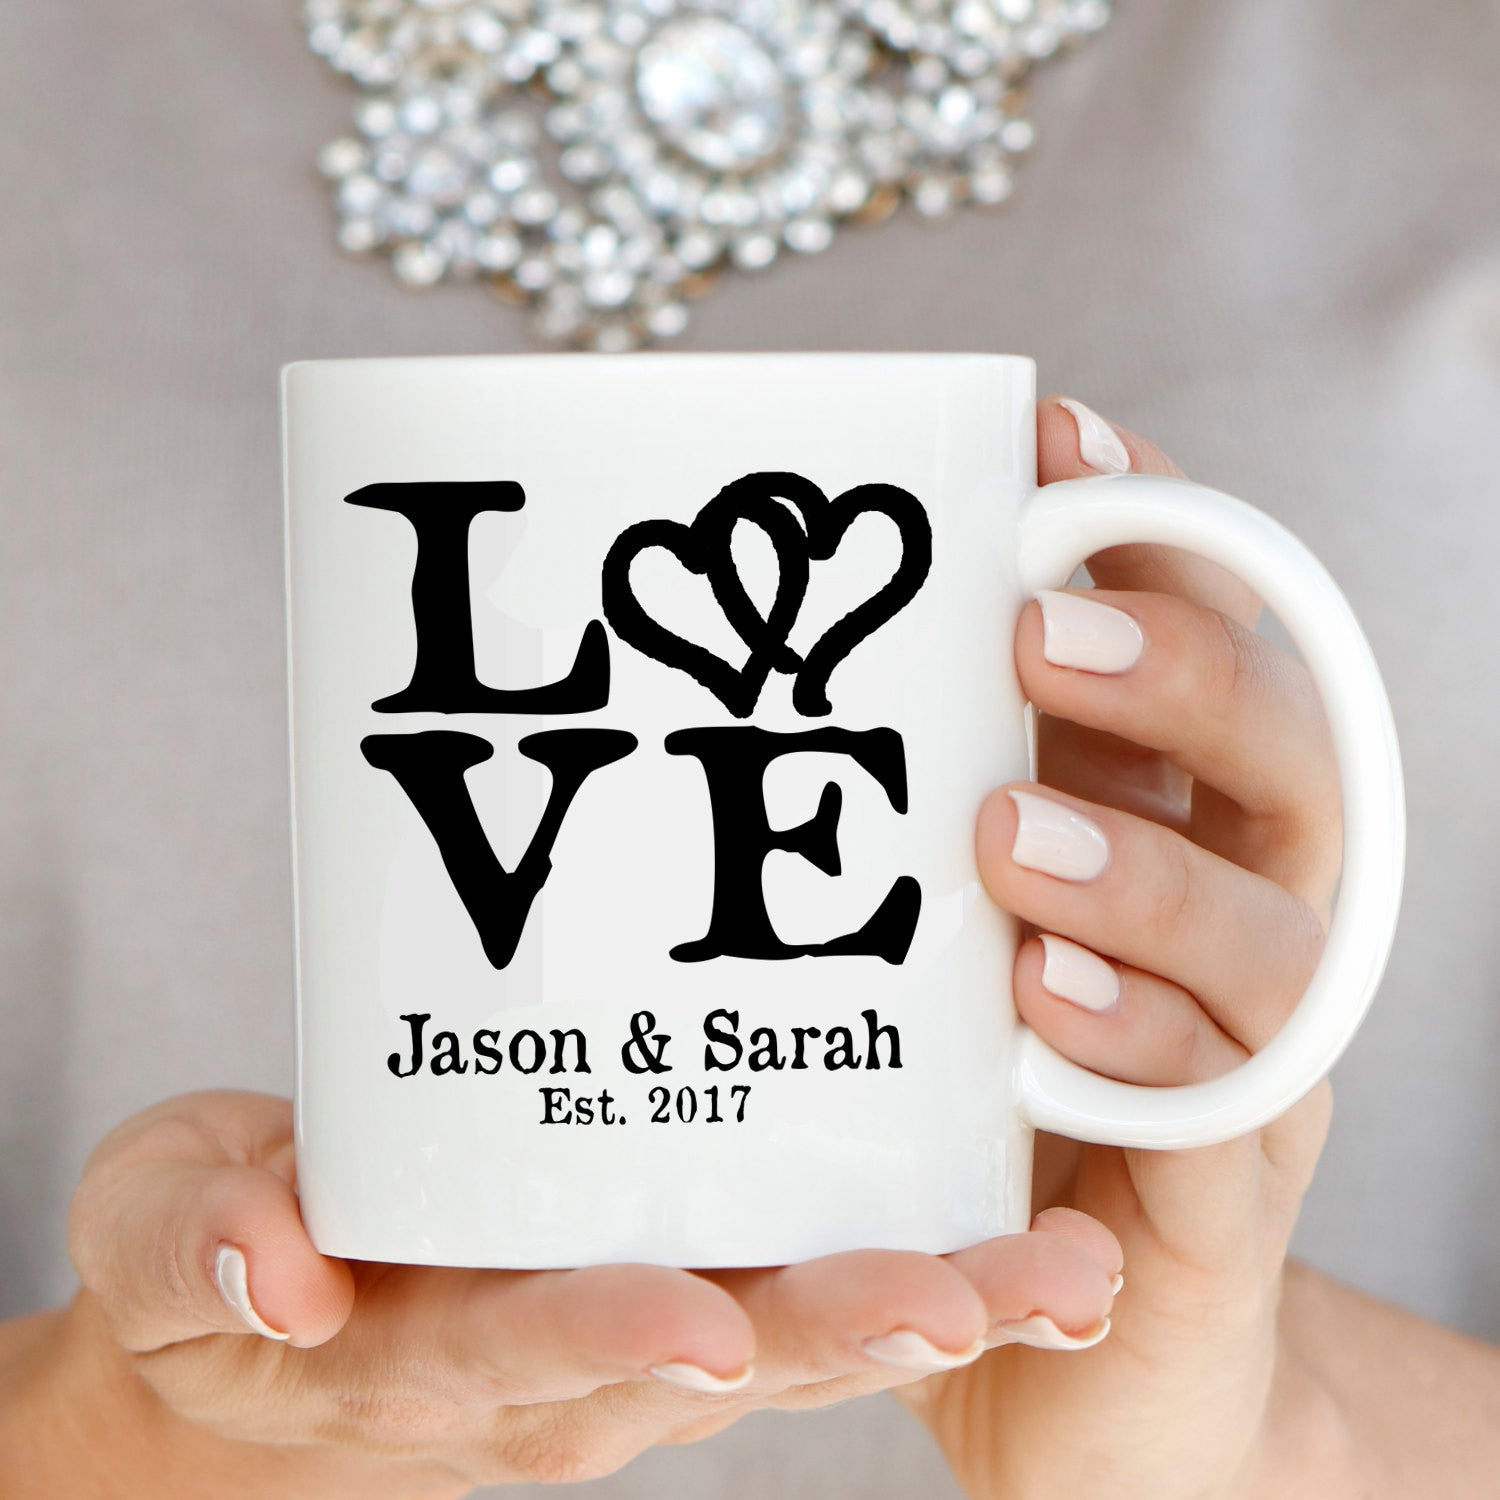 Perfect Wedding Anniversary Gift For Husband: Personalized Romantic Love Husband And Wife Names Gift